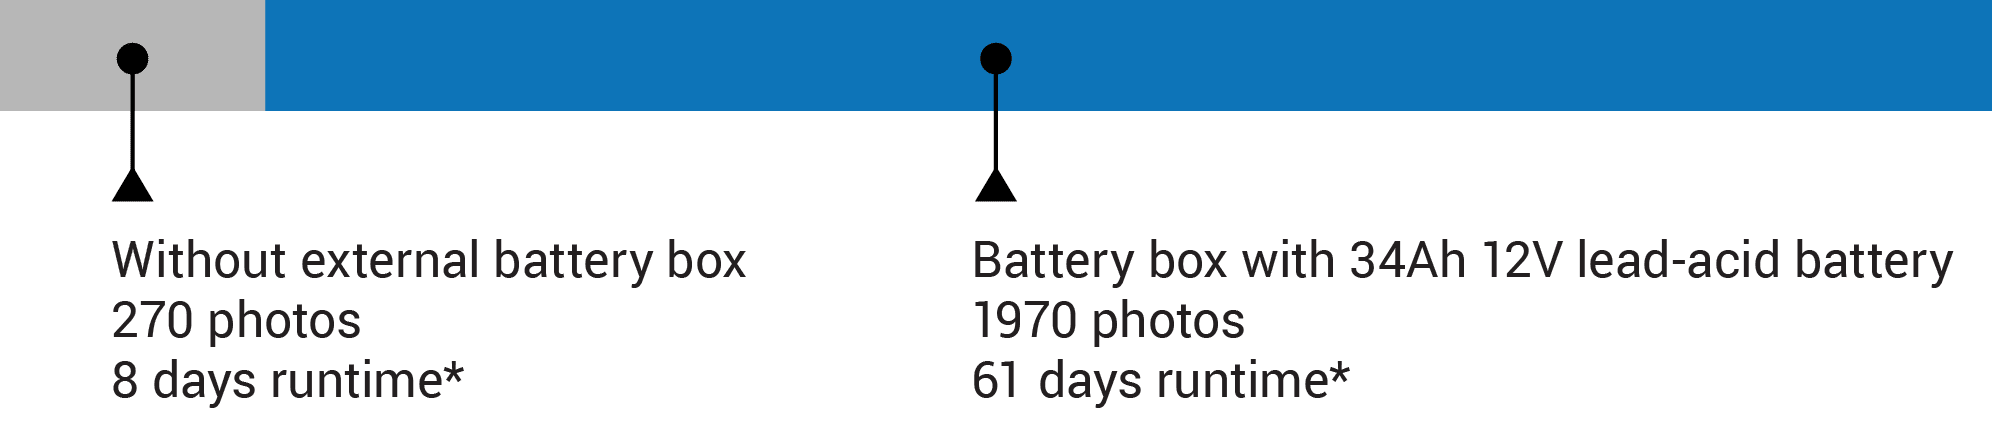 A bar comparing timelapse unit runtimes with and without the battery box